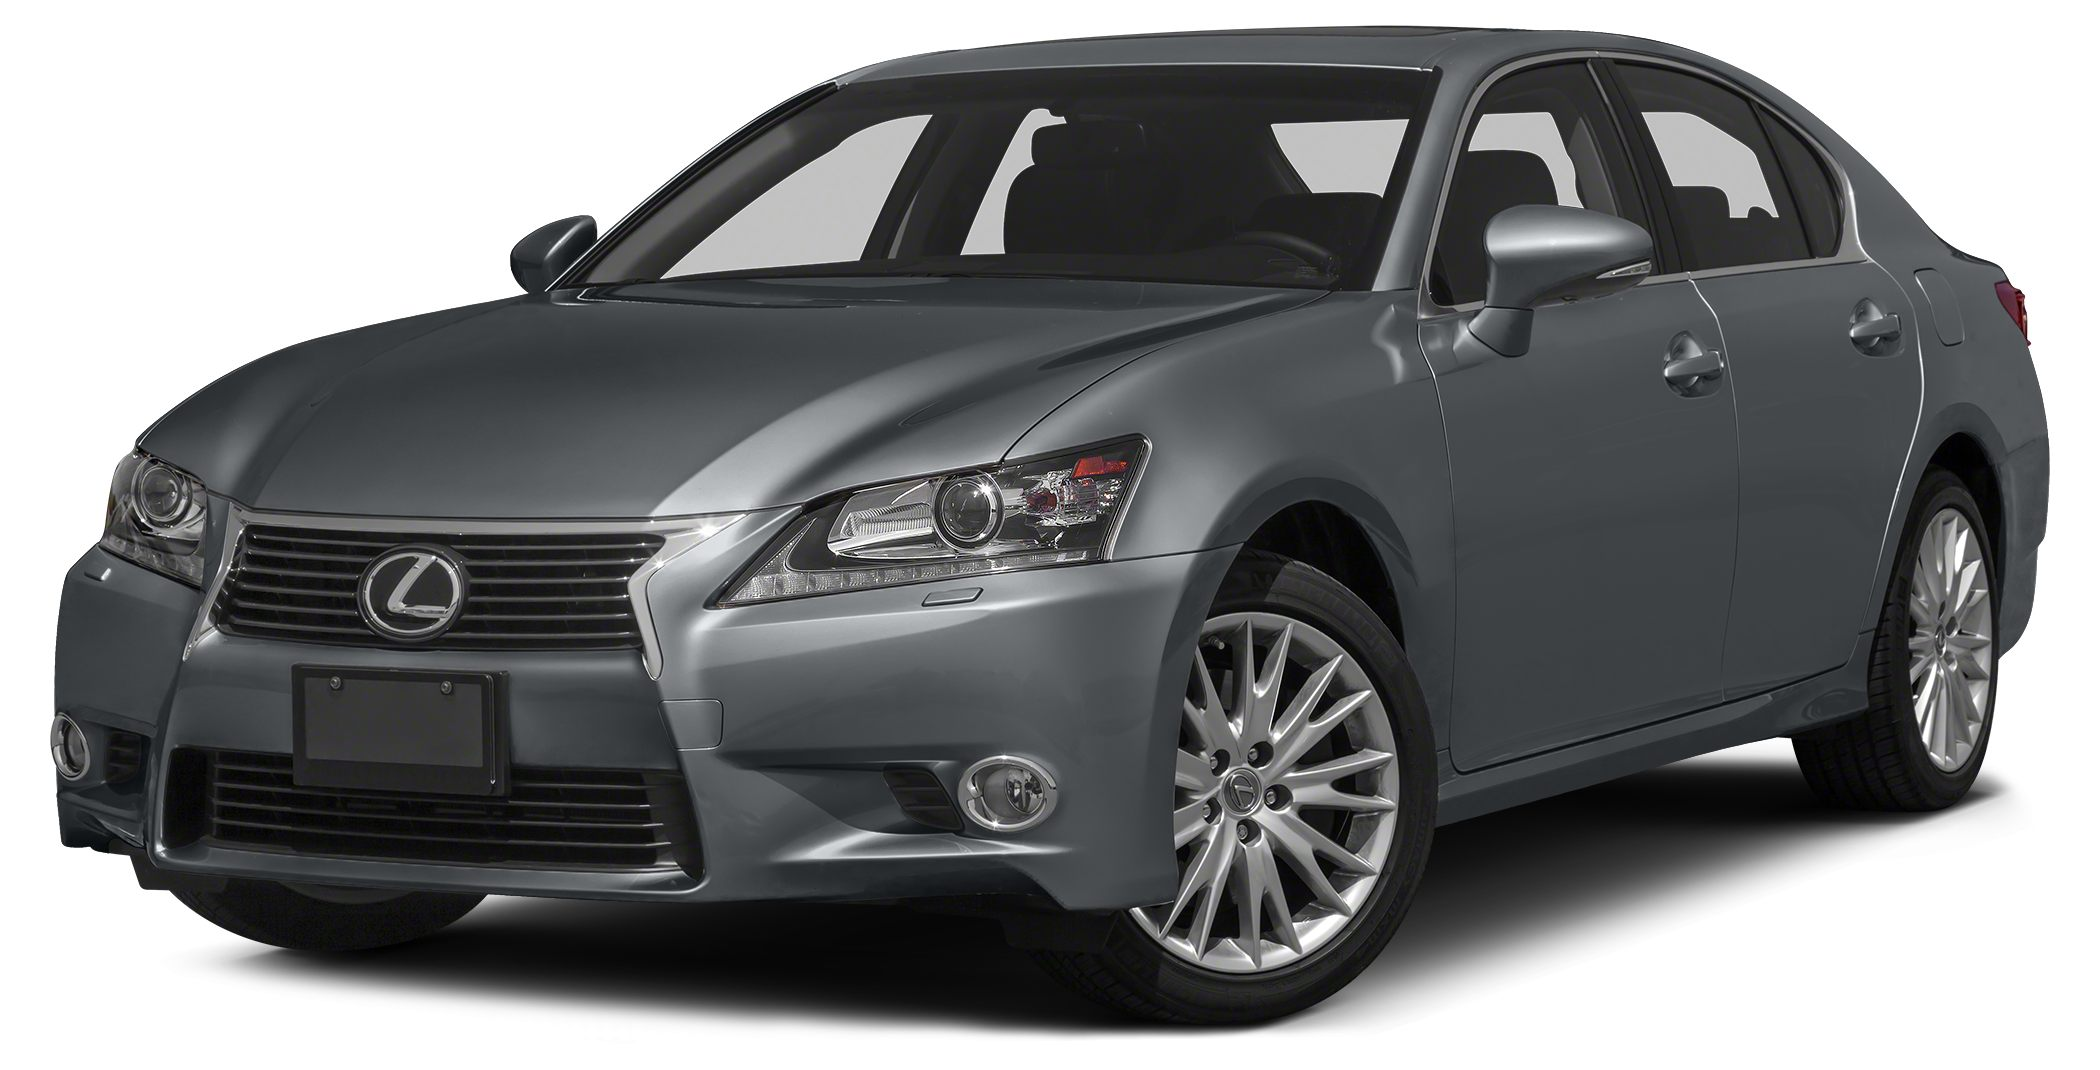 2013 Lexus GS 350 Base ACCIDENT FREE HISTORY REPORT and FINANCING AVAILABLE Cold Weather Package